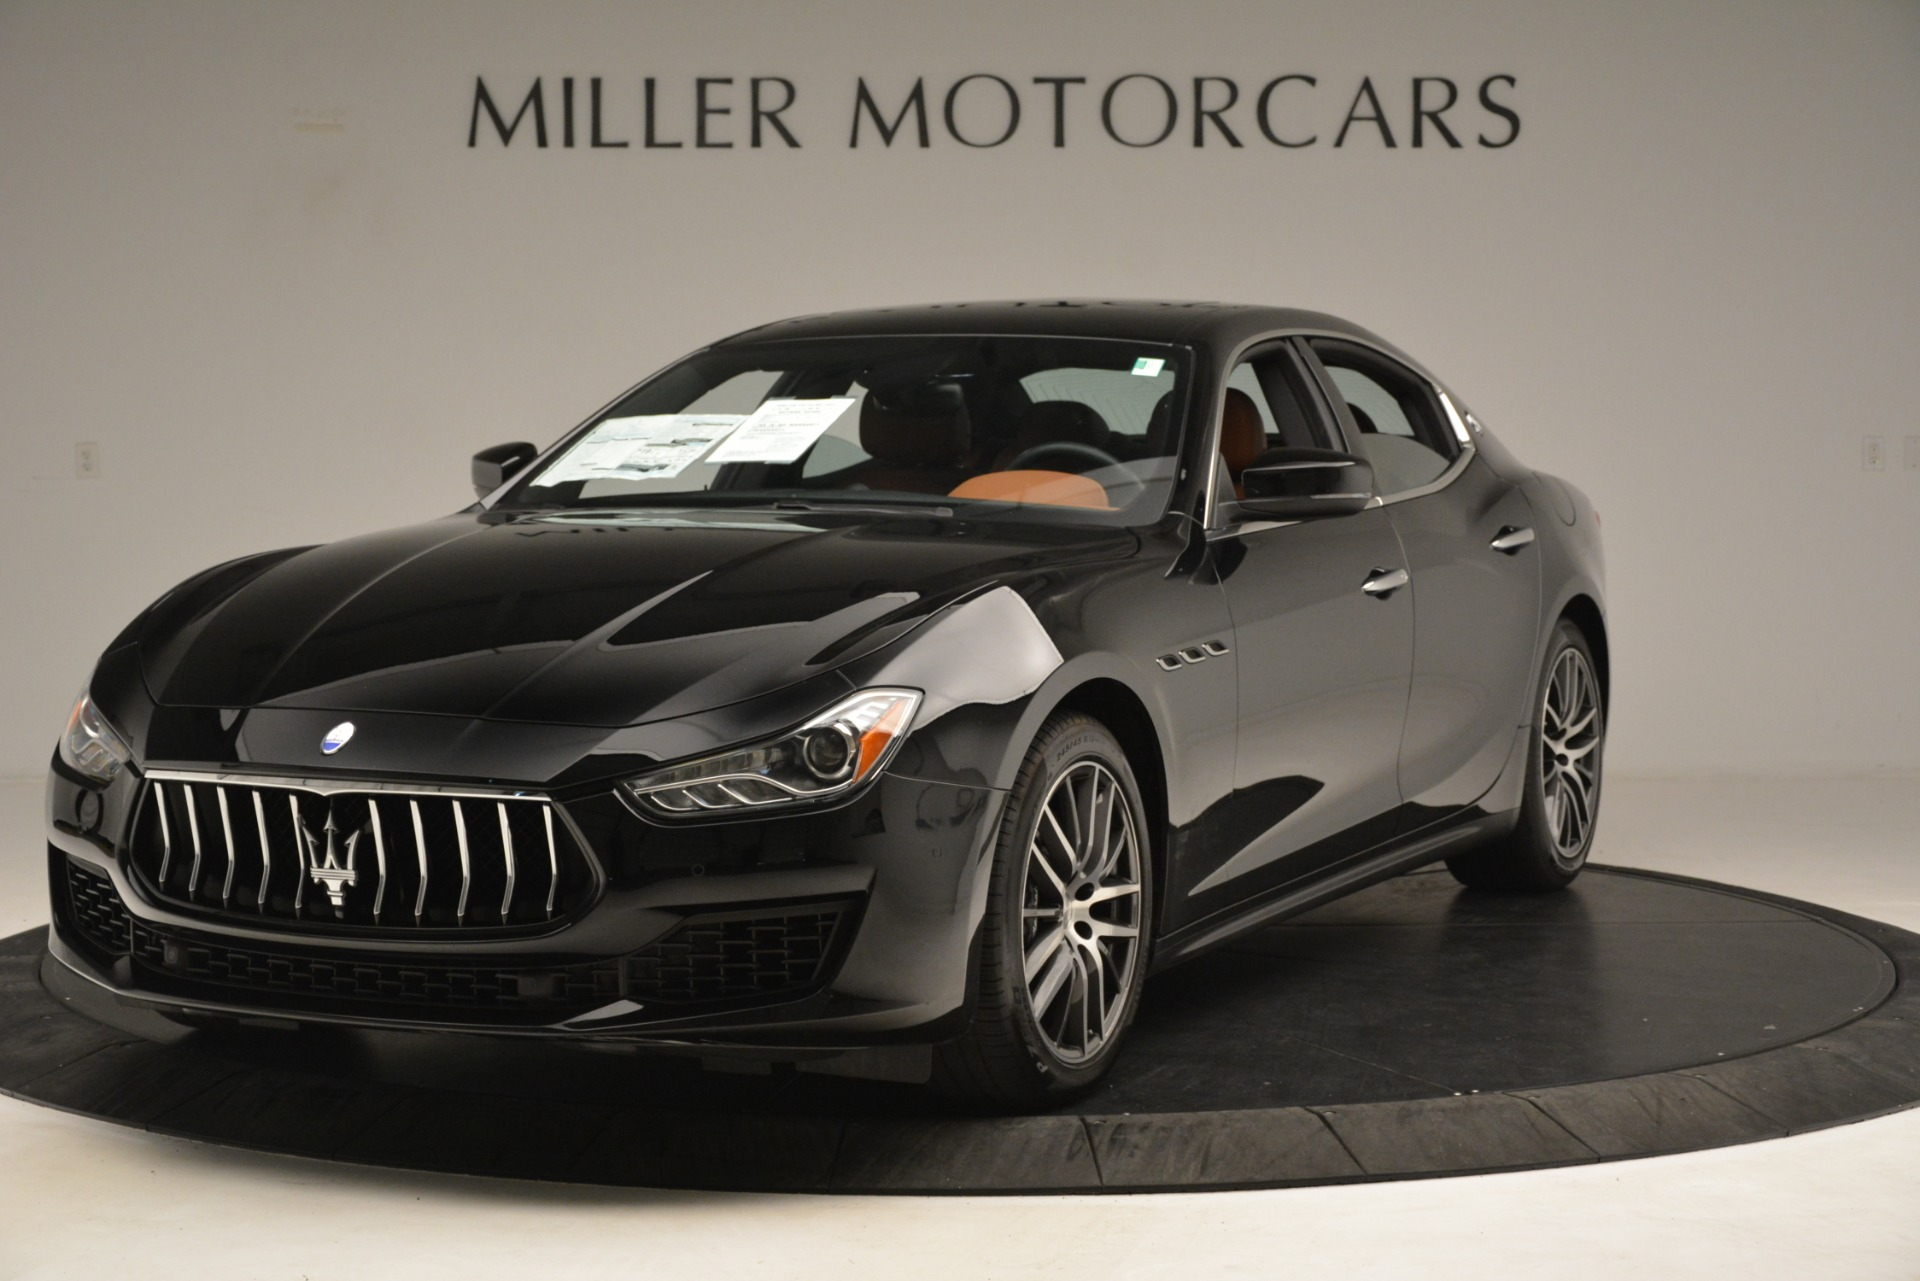 New 2019 Maserati Ghibli S Q4 for sale Sold at Alfa Romeo of Westport in Westport CT 06880 1